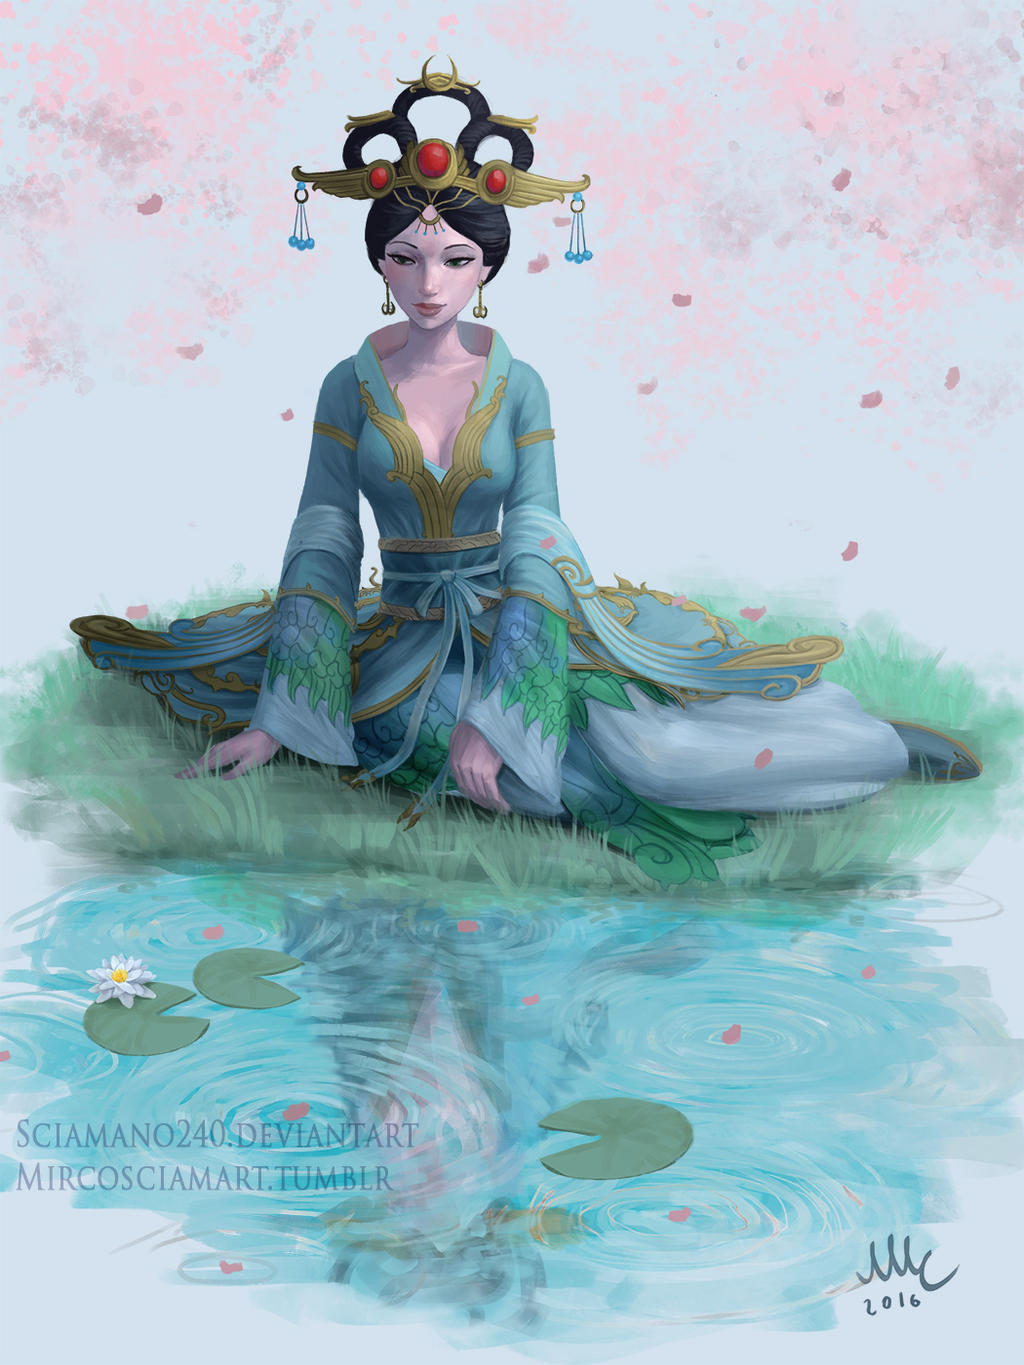 Chang'e - Smite (giveaway) by Sciamano240